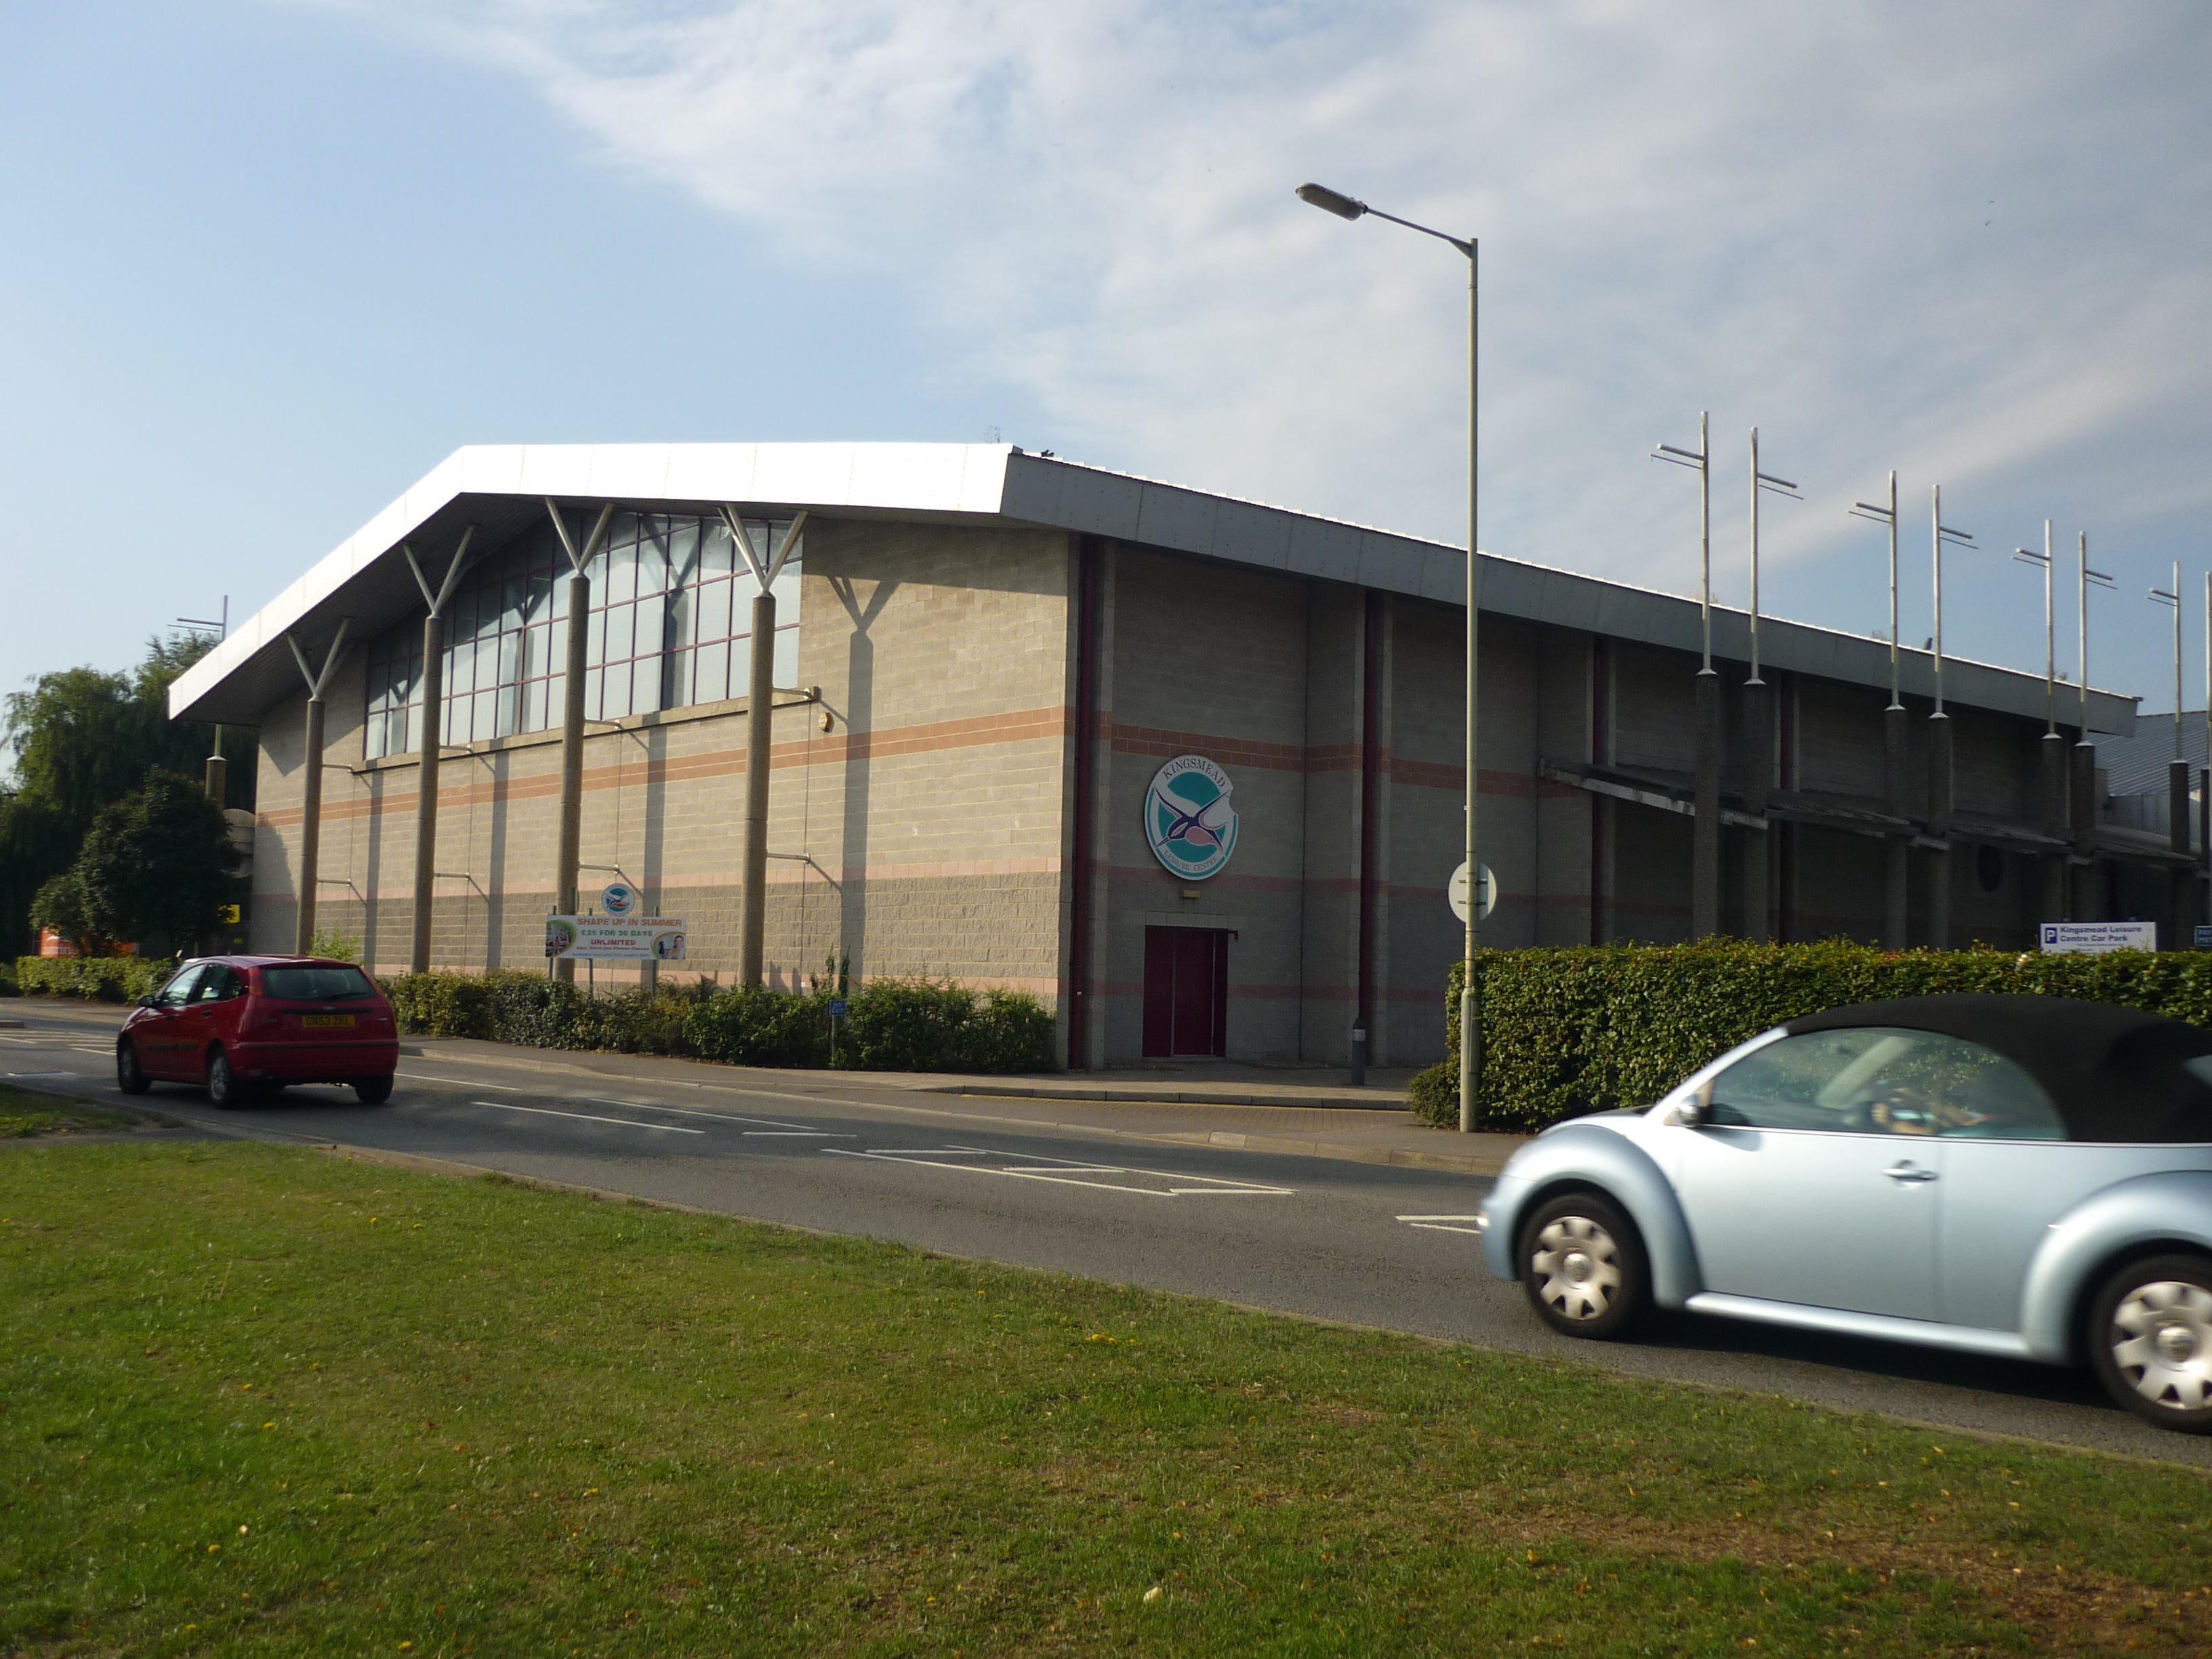 Kingsmead leisure centre in canterbury 1 reviews and 1 photos Canterbury swimming pool opening hours